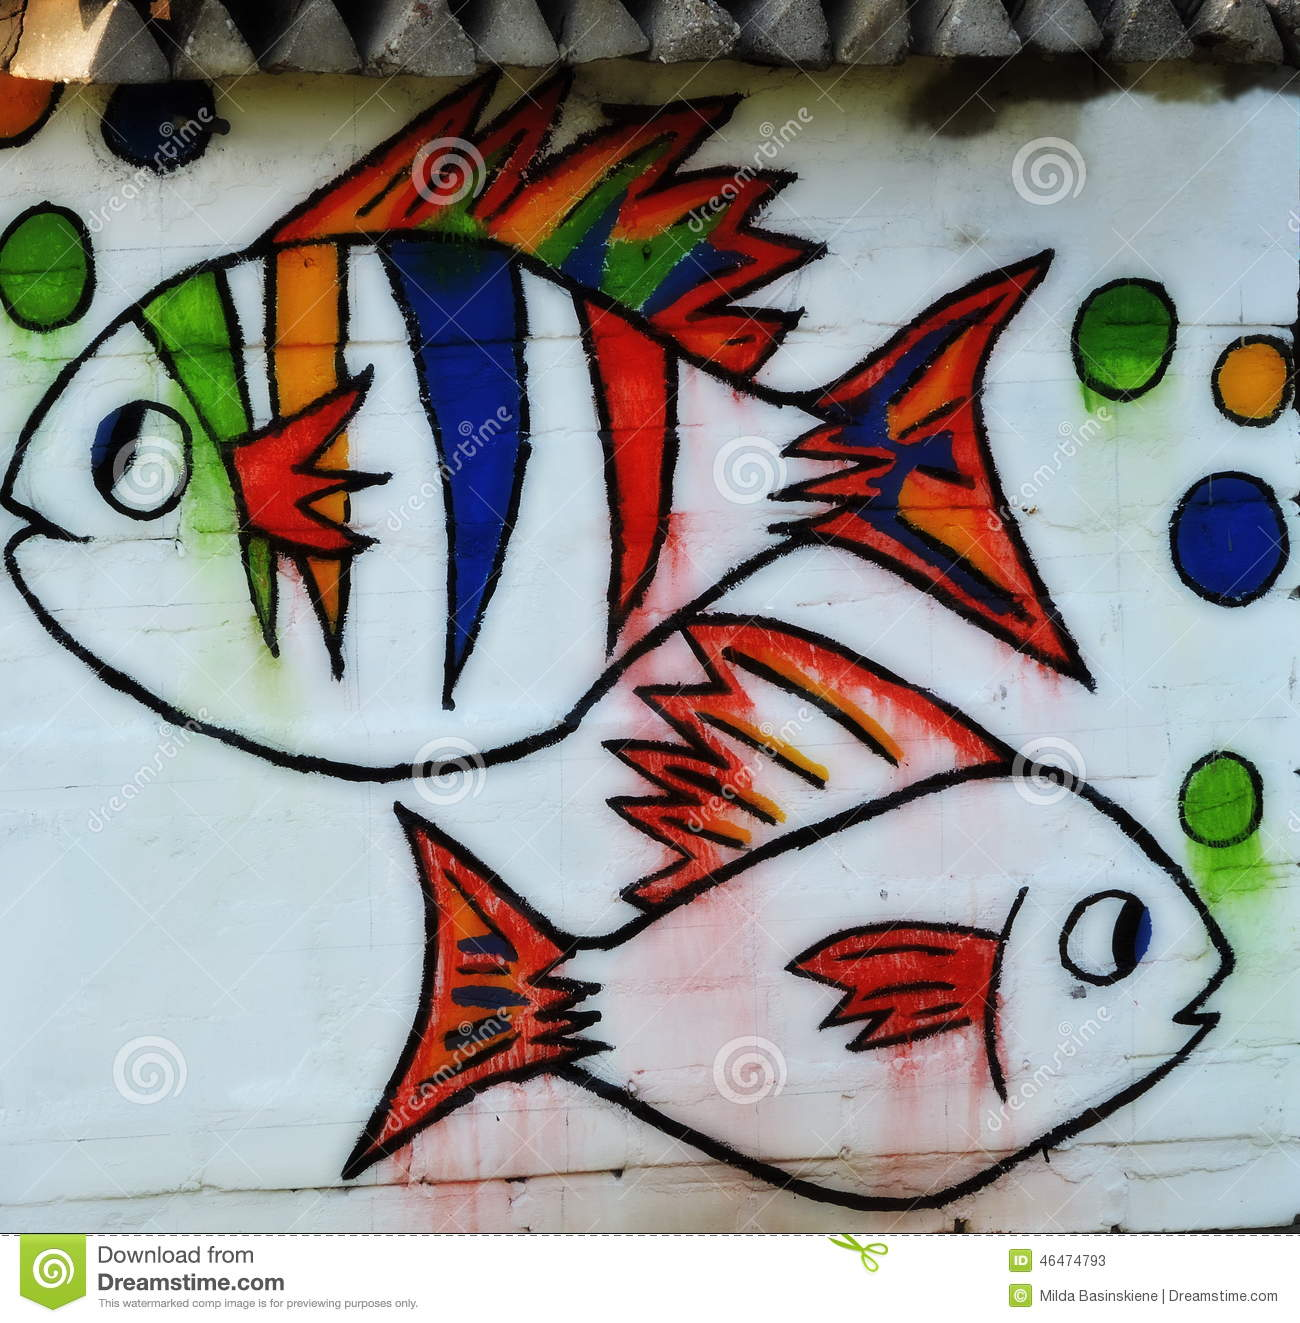 Two fish painted on wall stock image. Image of animal - 46474793